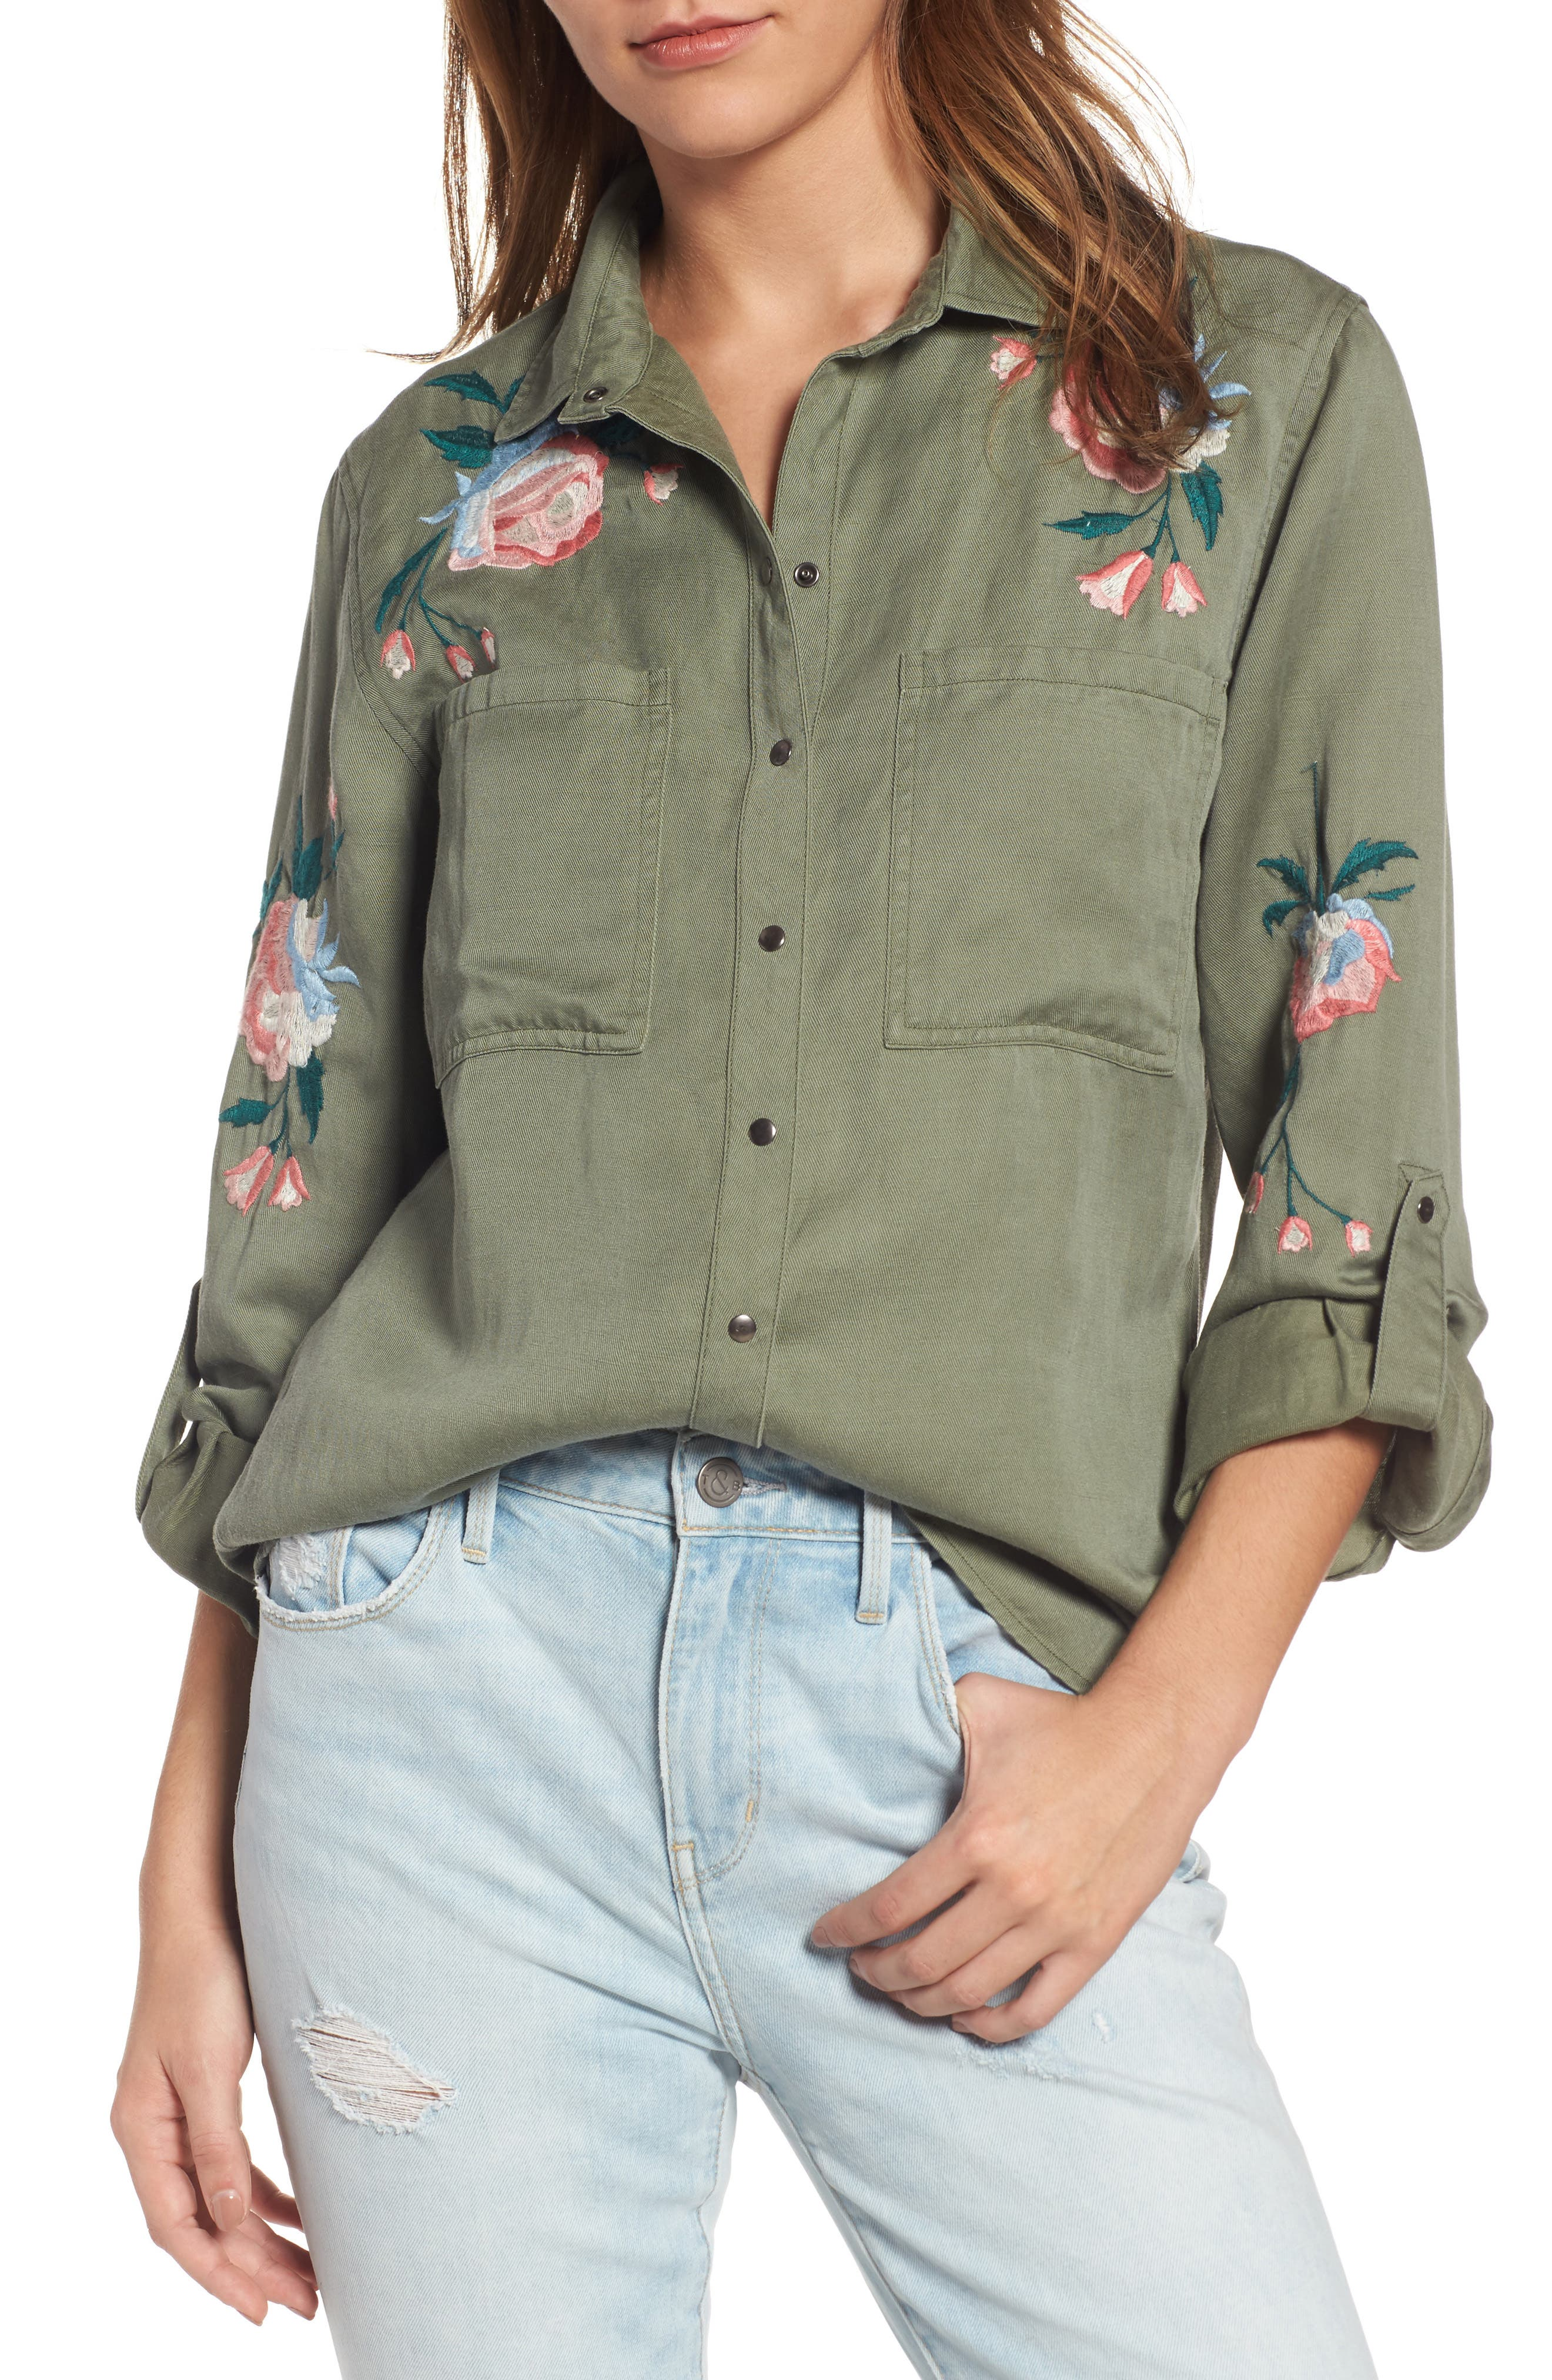 Alternate Image 1 Selected - Rails Channing Embroidered Military Shirt